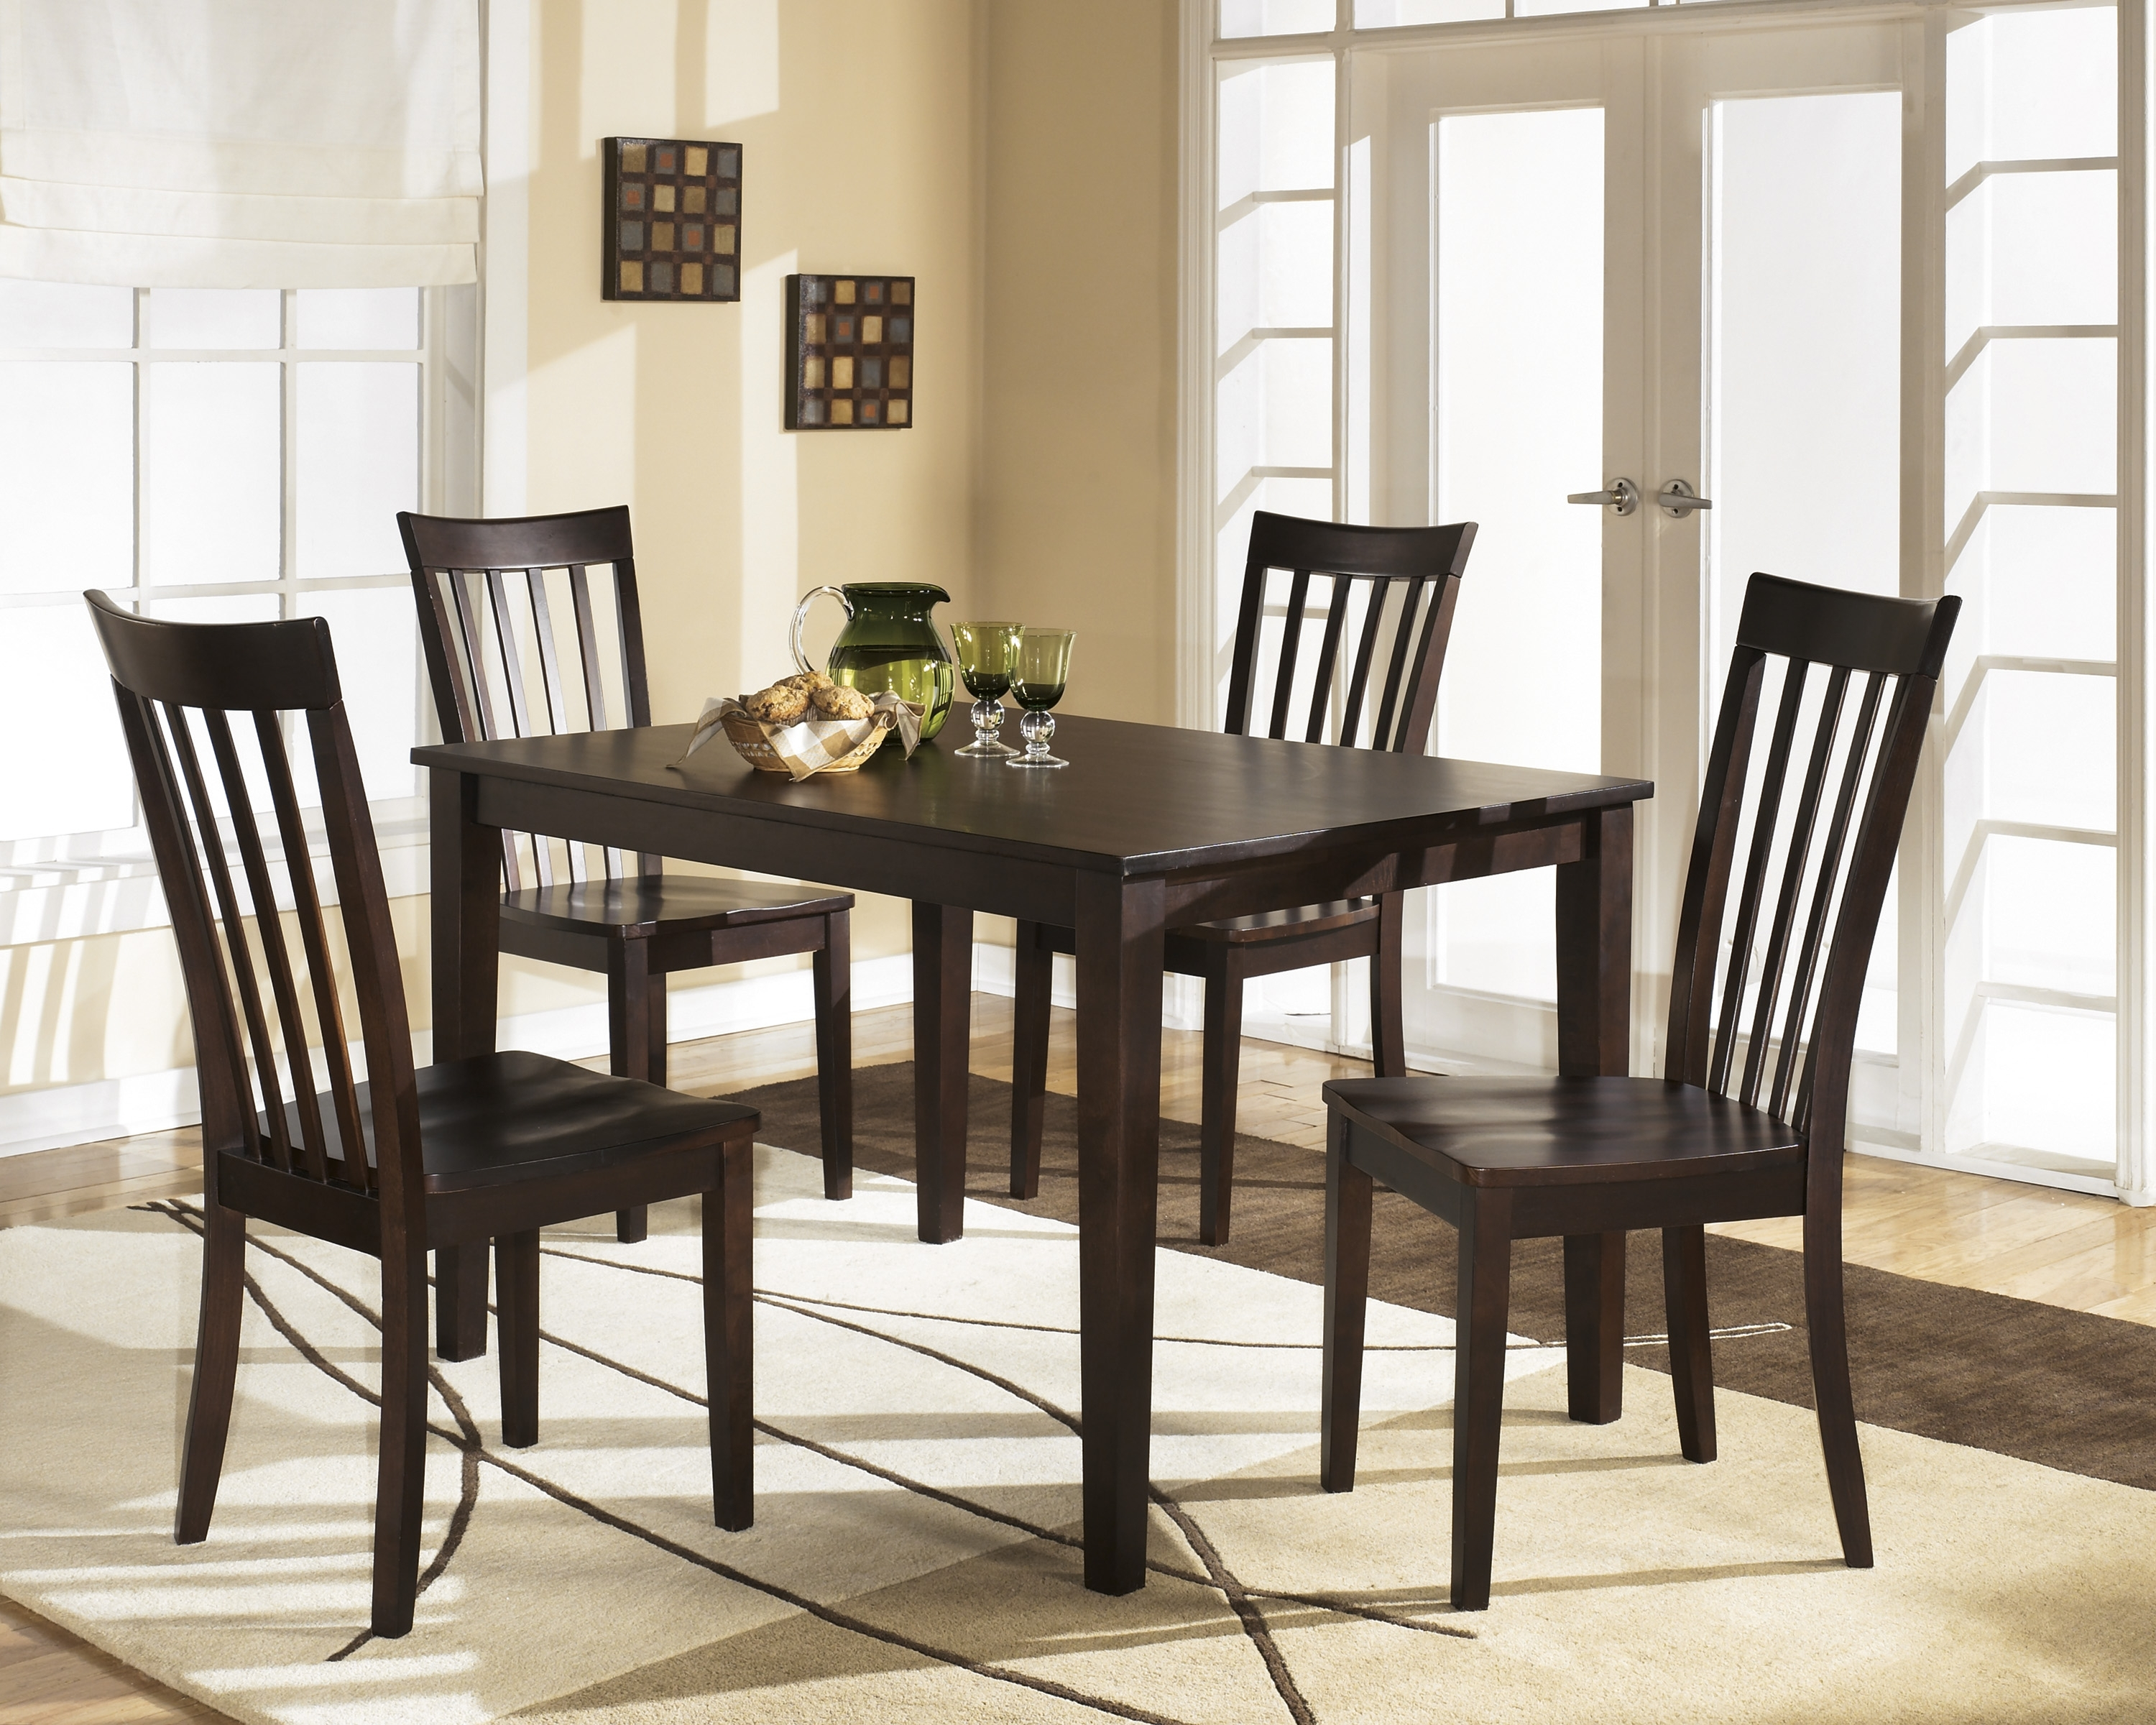 Most Recent Palazzo 6 Piece Dining Sets With Pearson Grey Side Chairs Inside Https://www.localfurnitureoutlet/mattresses.html 2018 07 18 (Gallery 24 of 25)